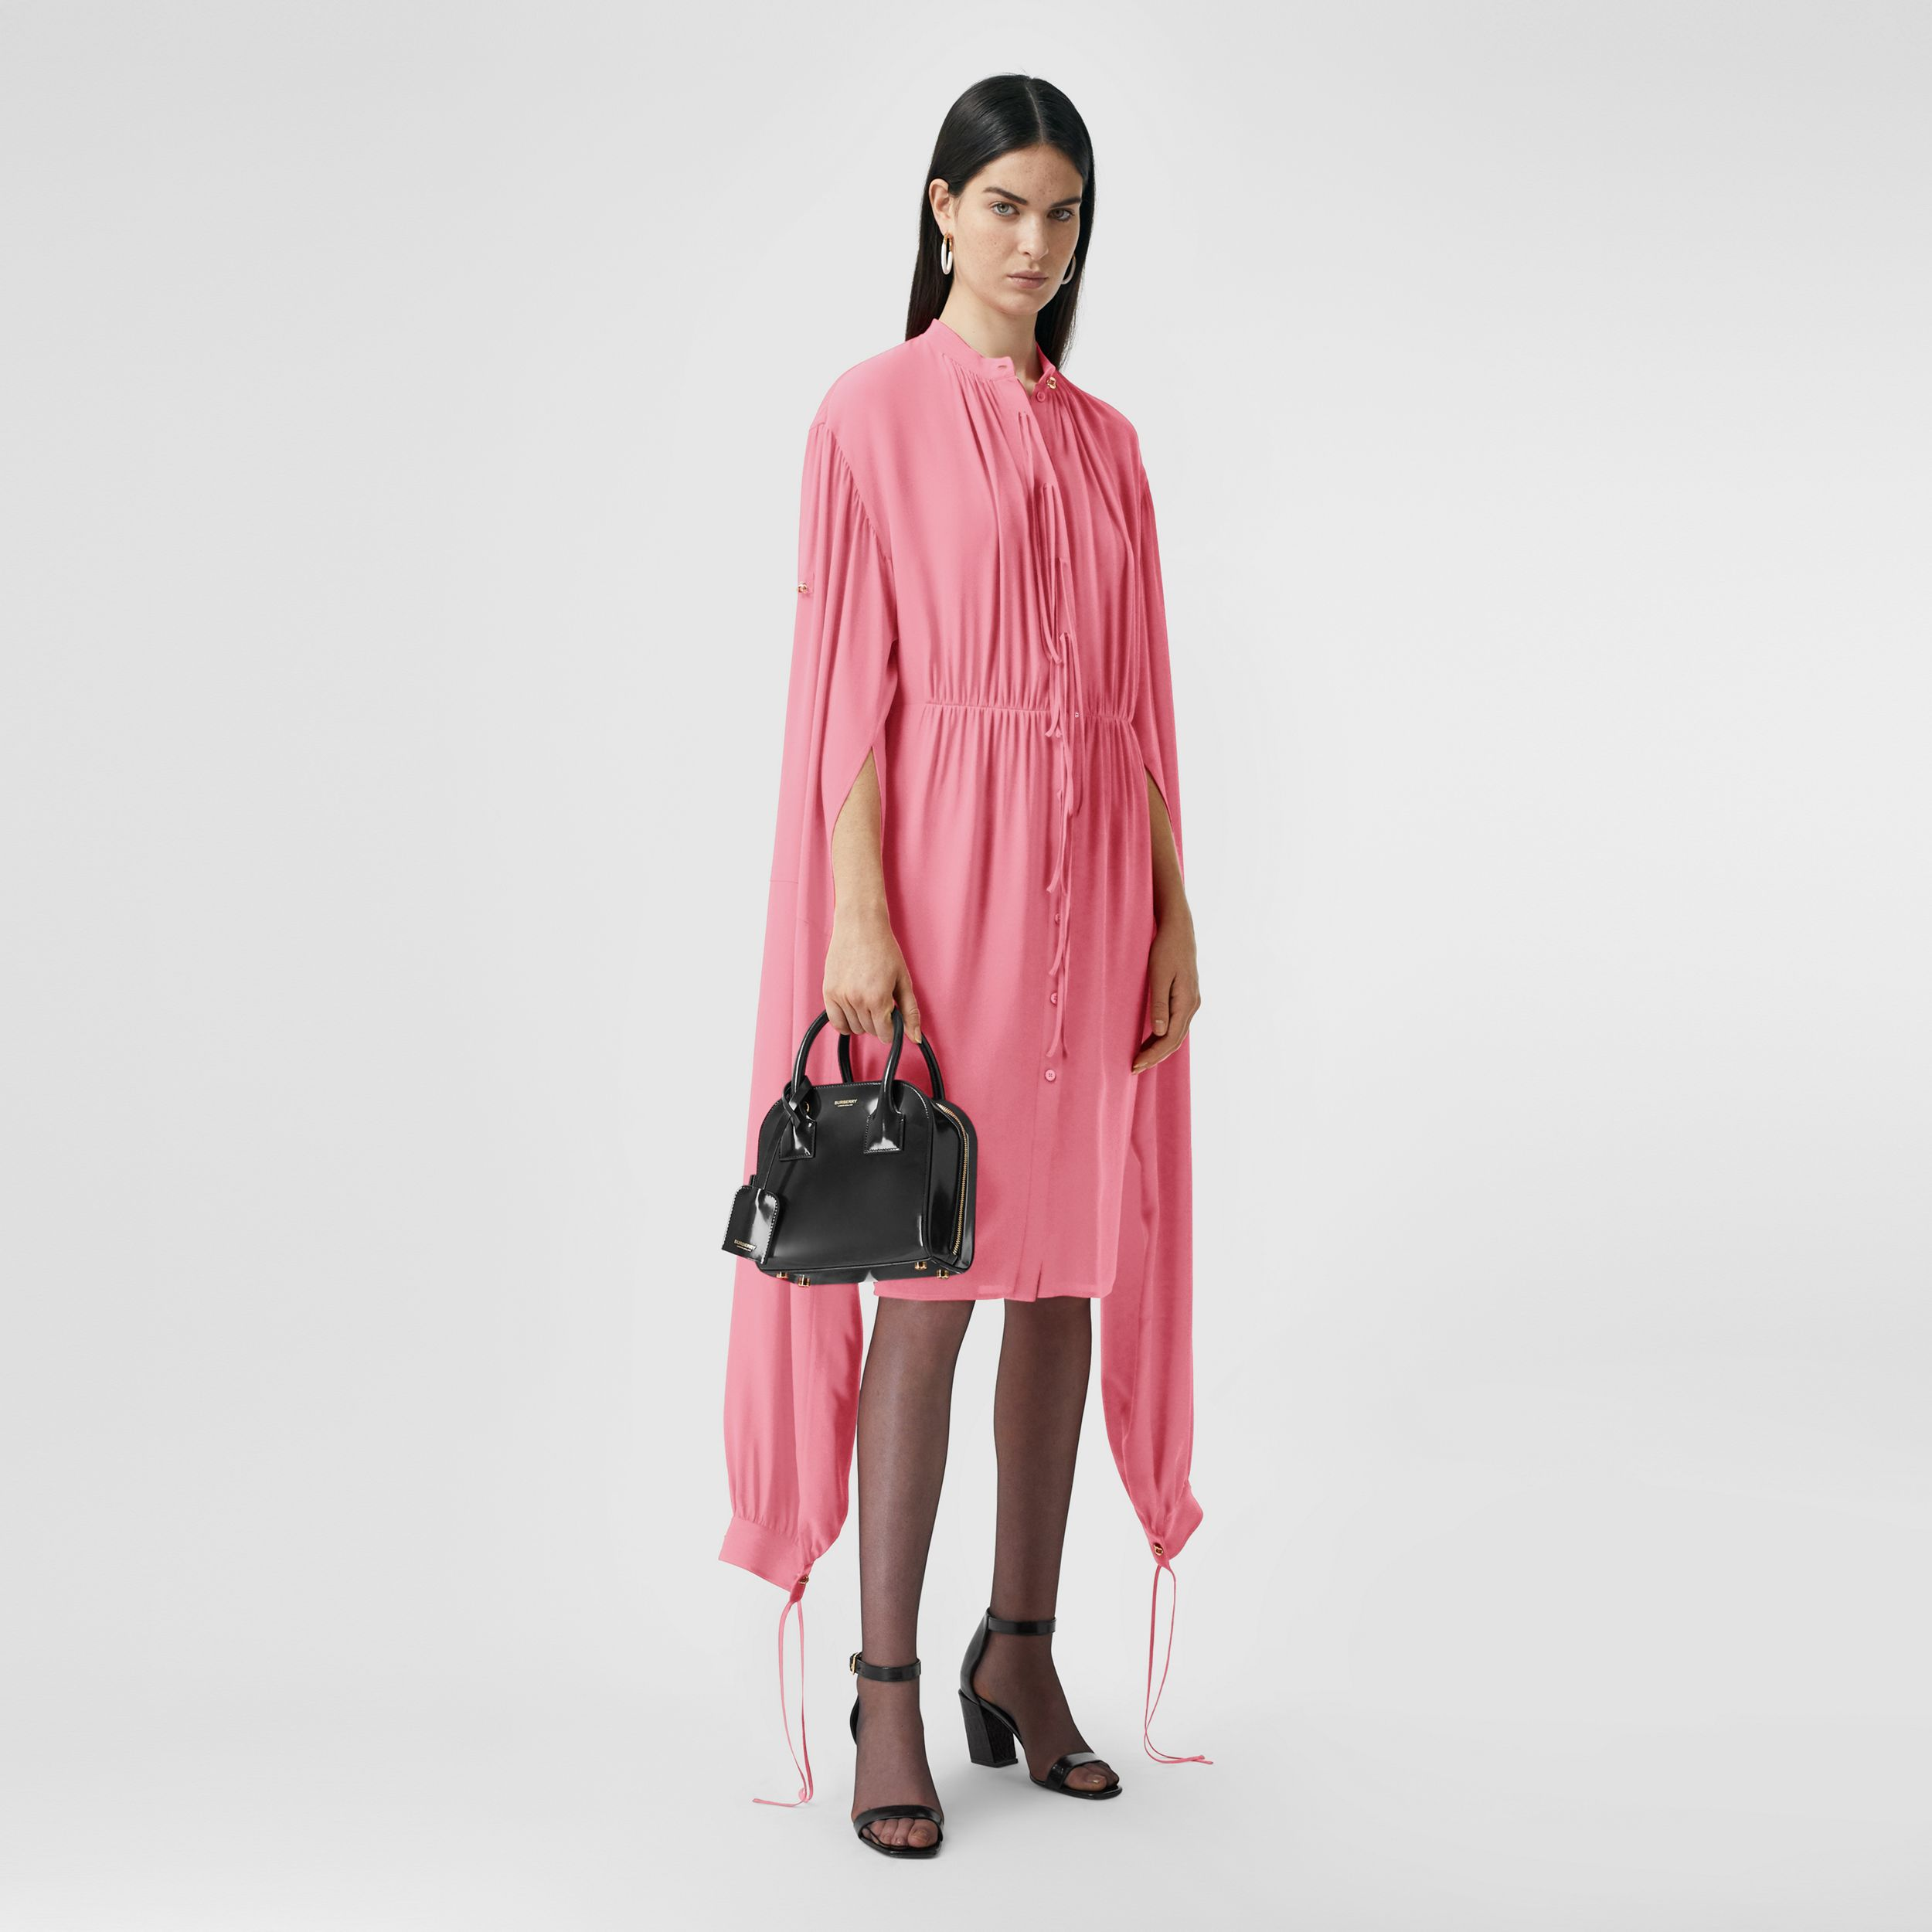 Loop-back Sleeve Silk Crepe De Chine Dress in Bubblegum Pink - Women | Burberry - 1